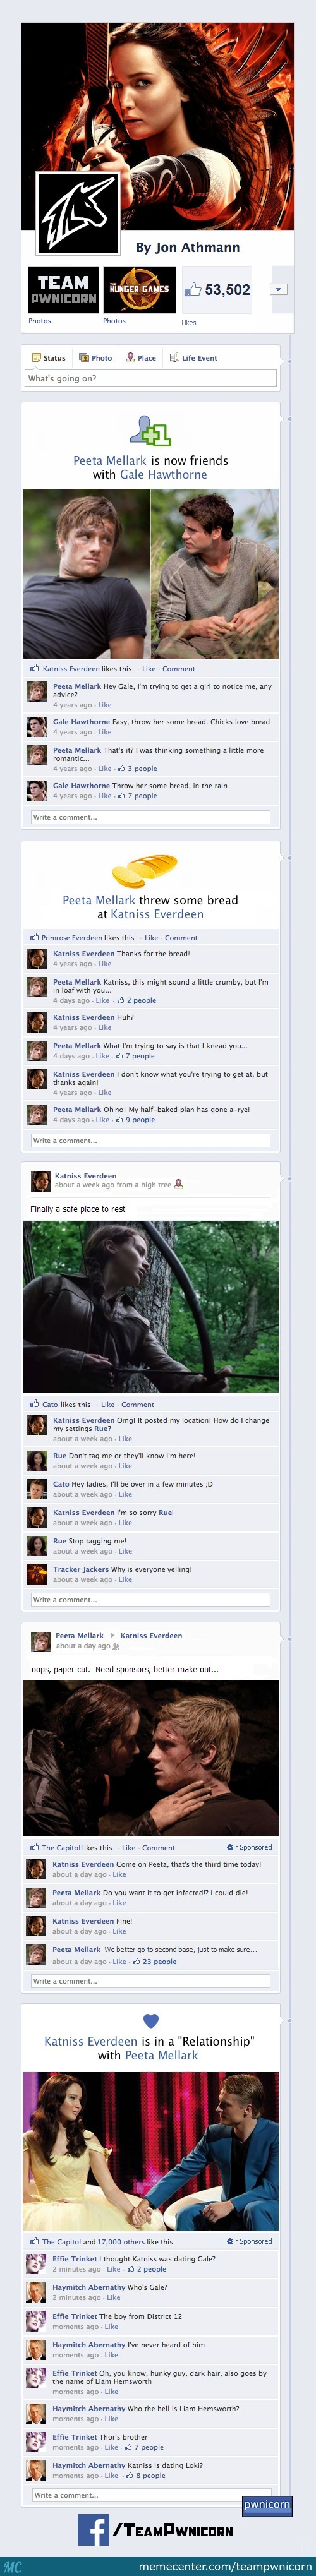 the-hunger-games-on-facebook_o_2491167